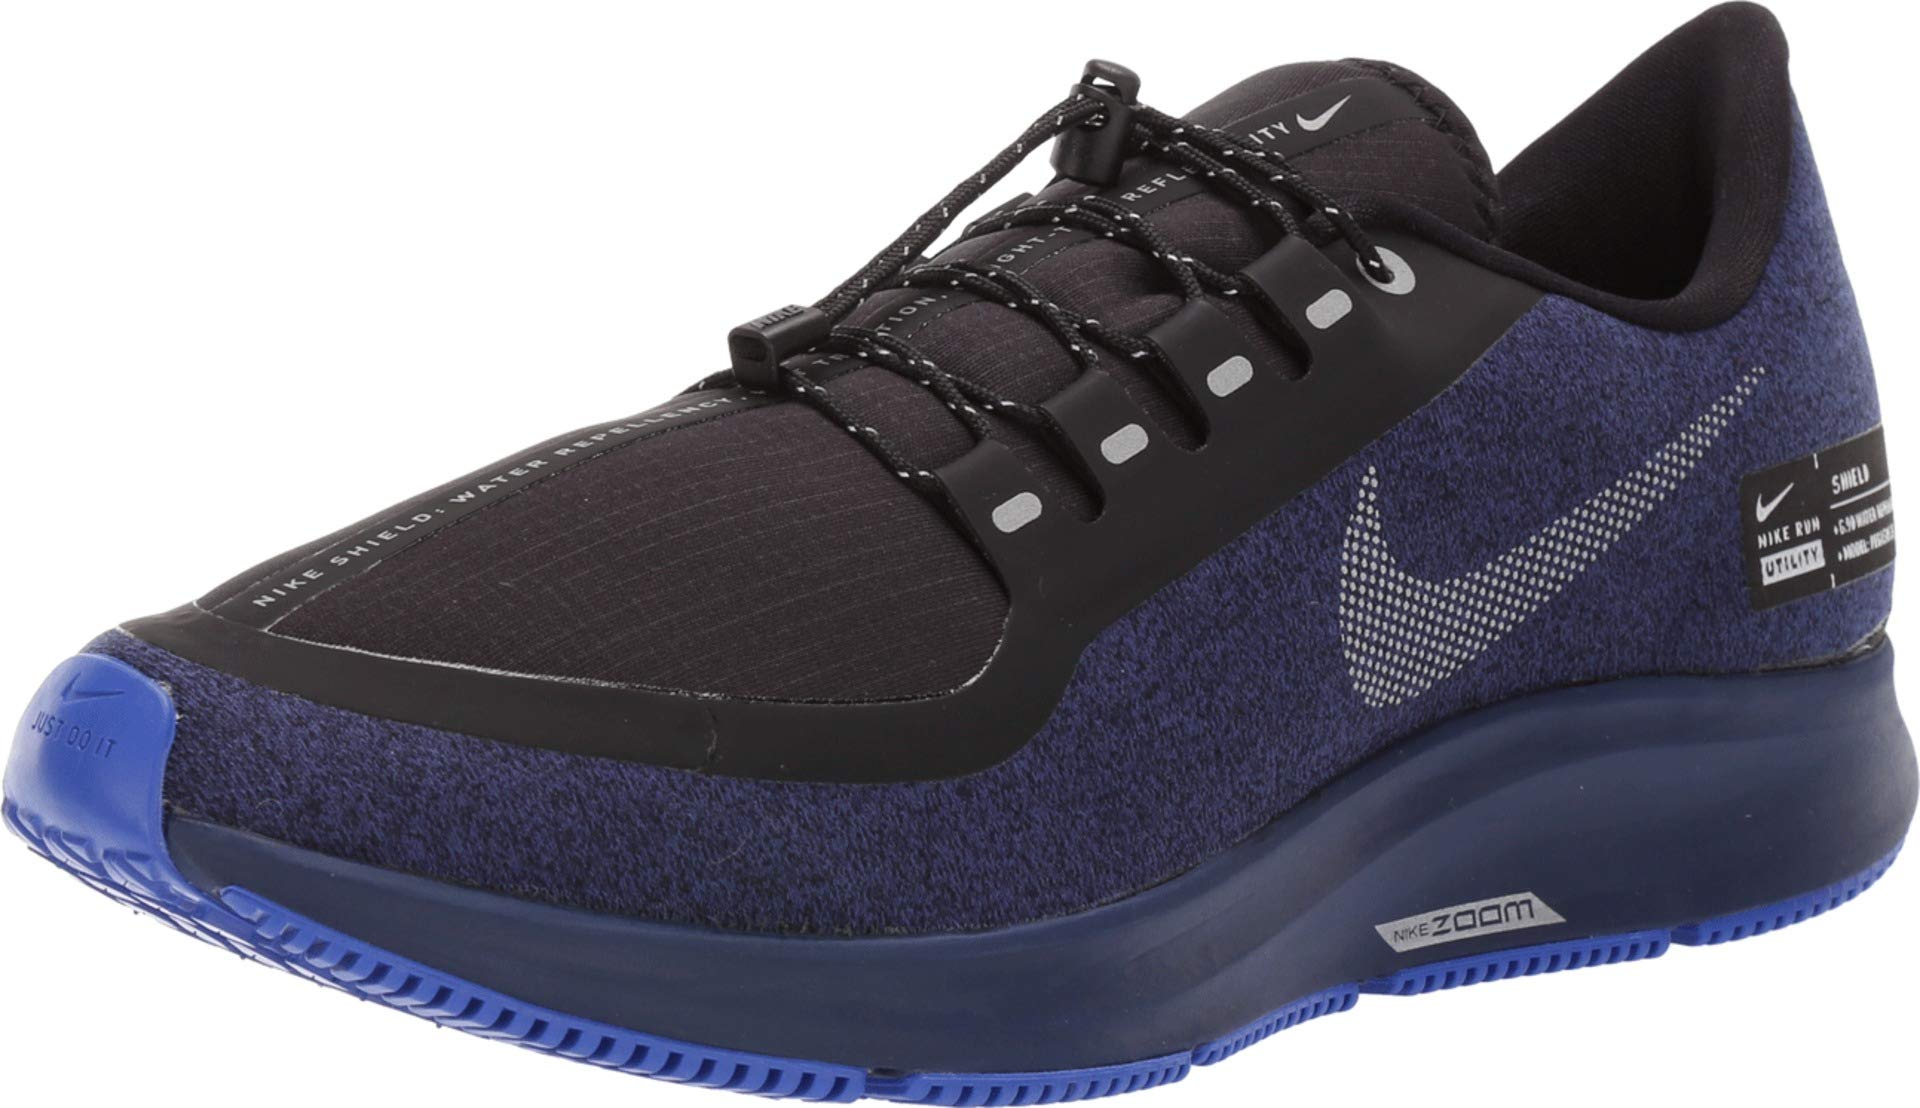 af17d9cfe9b Galleon - NIKE Air Zoom Pegasus 35 Shield Men s Running Shoe Black Metallic  Silver-Blue Void 7.5